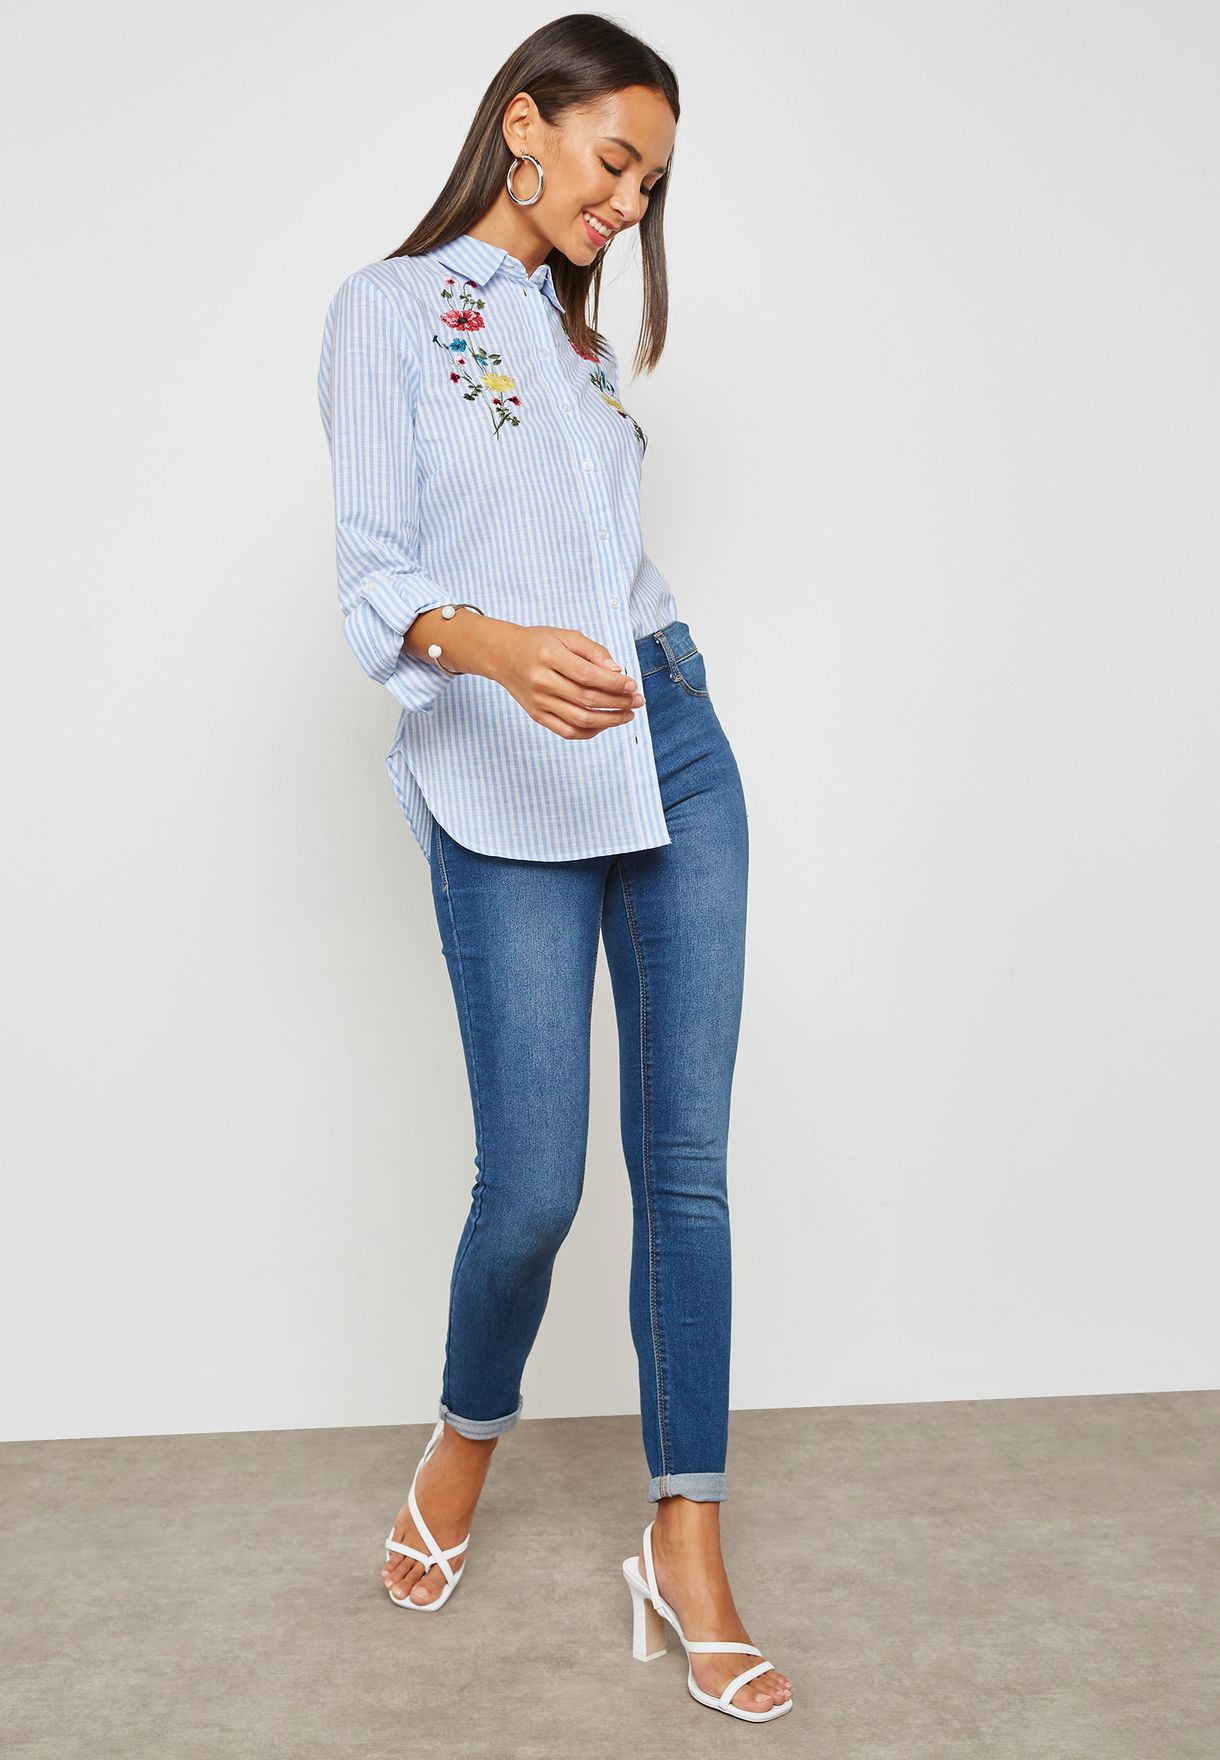 Floral Embroidered Striped Shirt